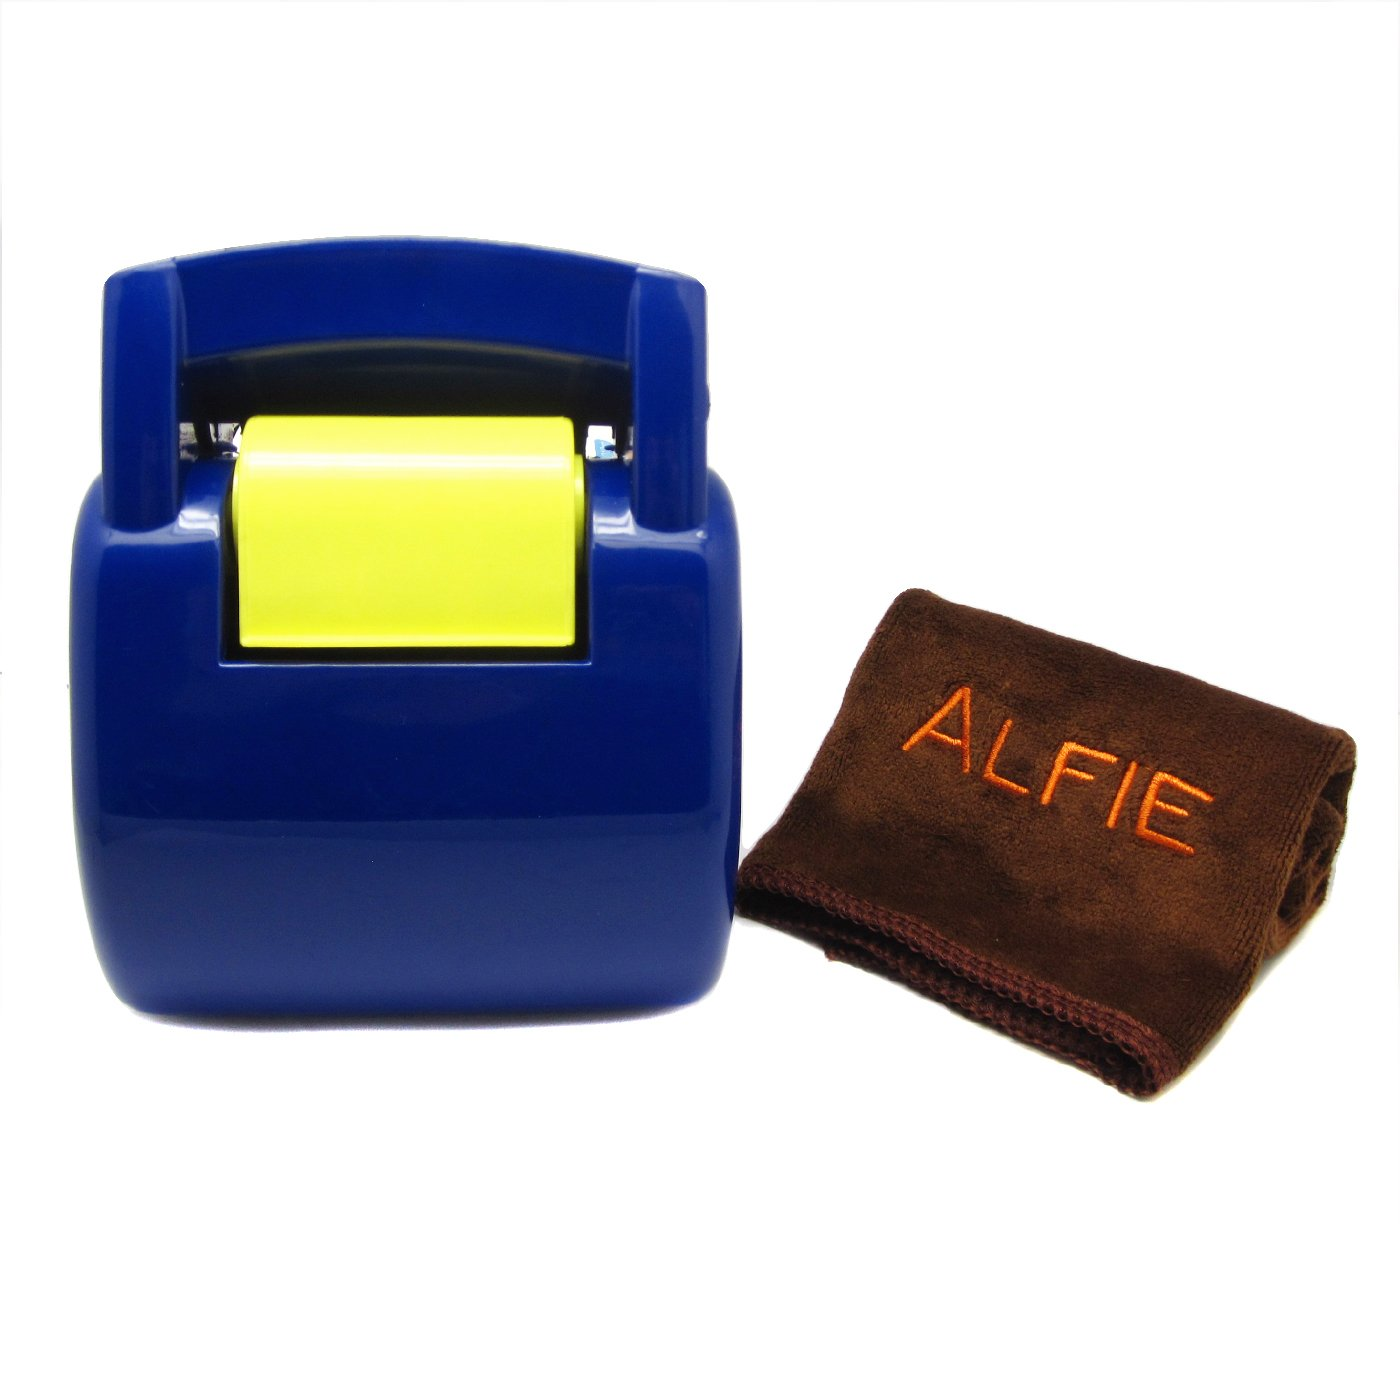 Alfie Pet by Petoga Couture - JAC Pet Waste Pickup Tool with Bag Dispenser and Bags with Microfiber Fast-Dry Washcloth Set - Color: Blue and Yellow